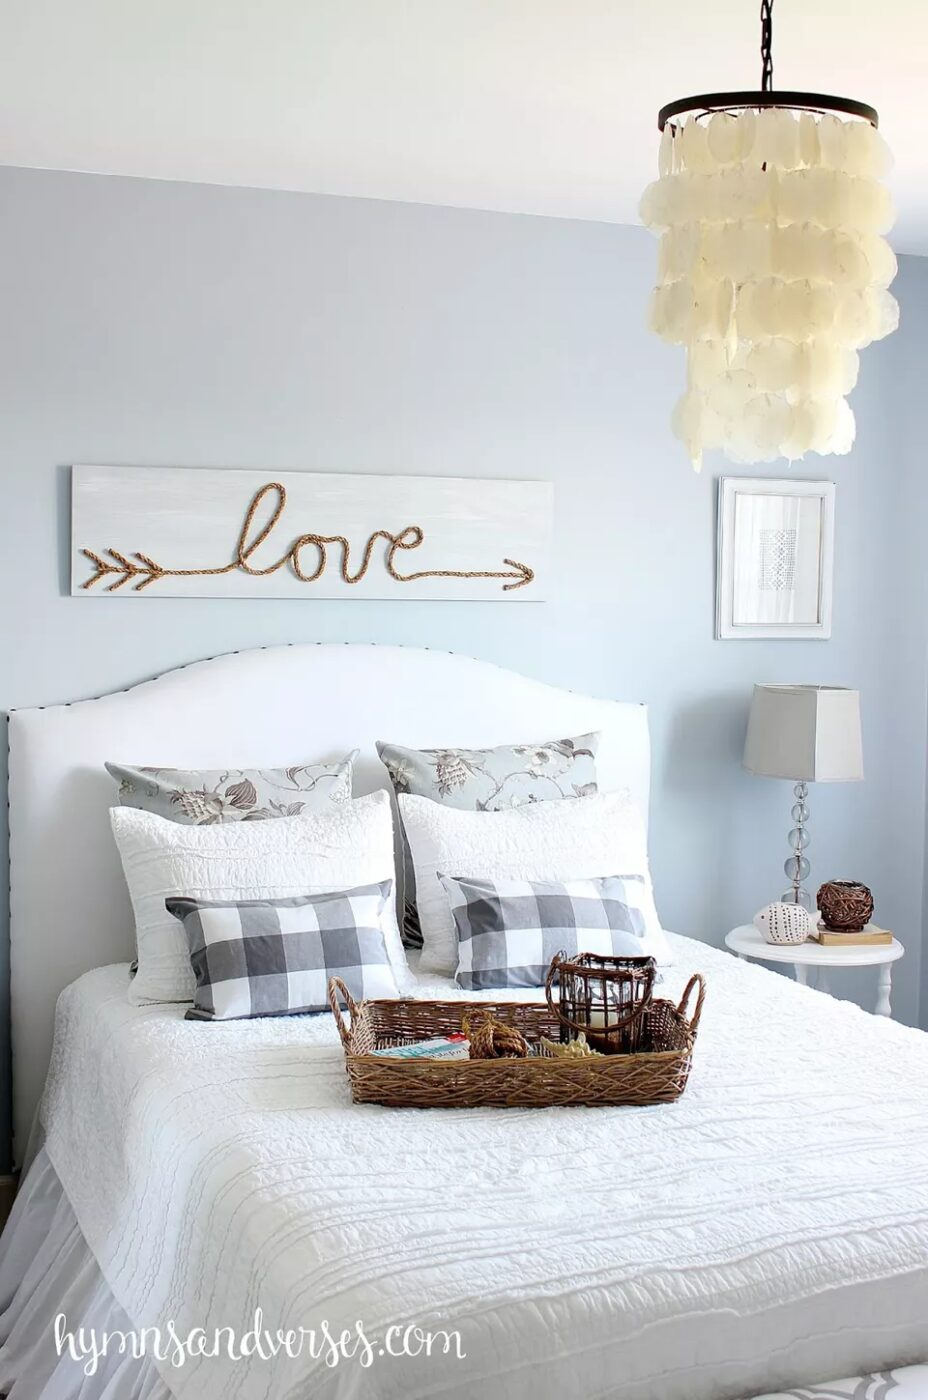 17 Unique DIY Wall Art Ideas